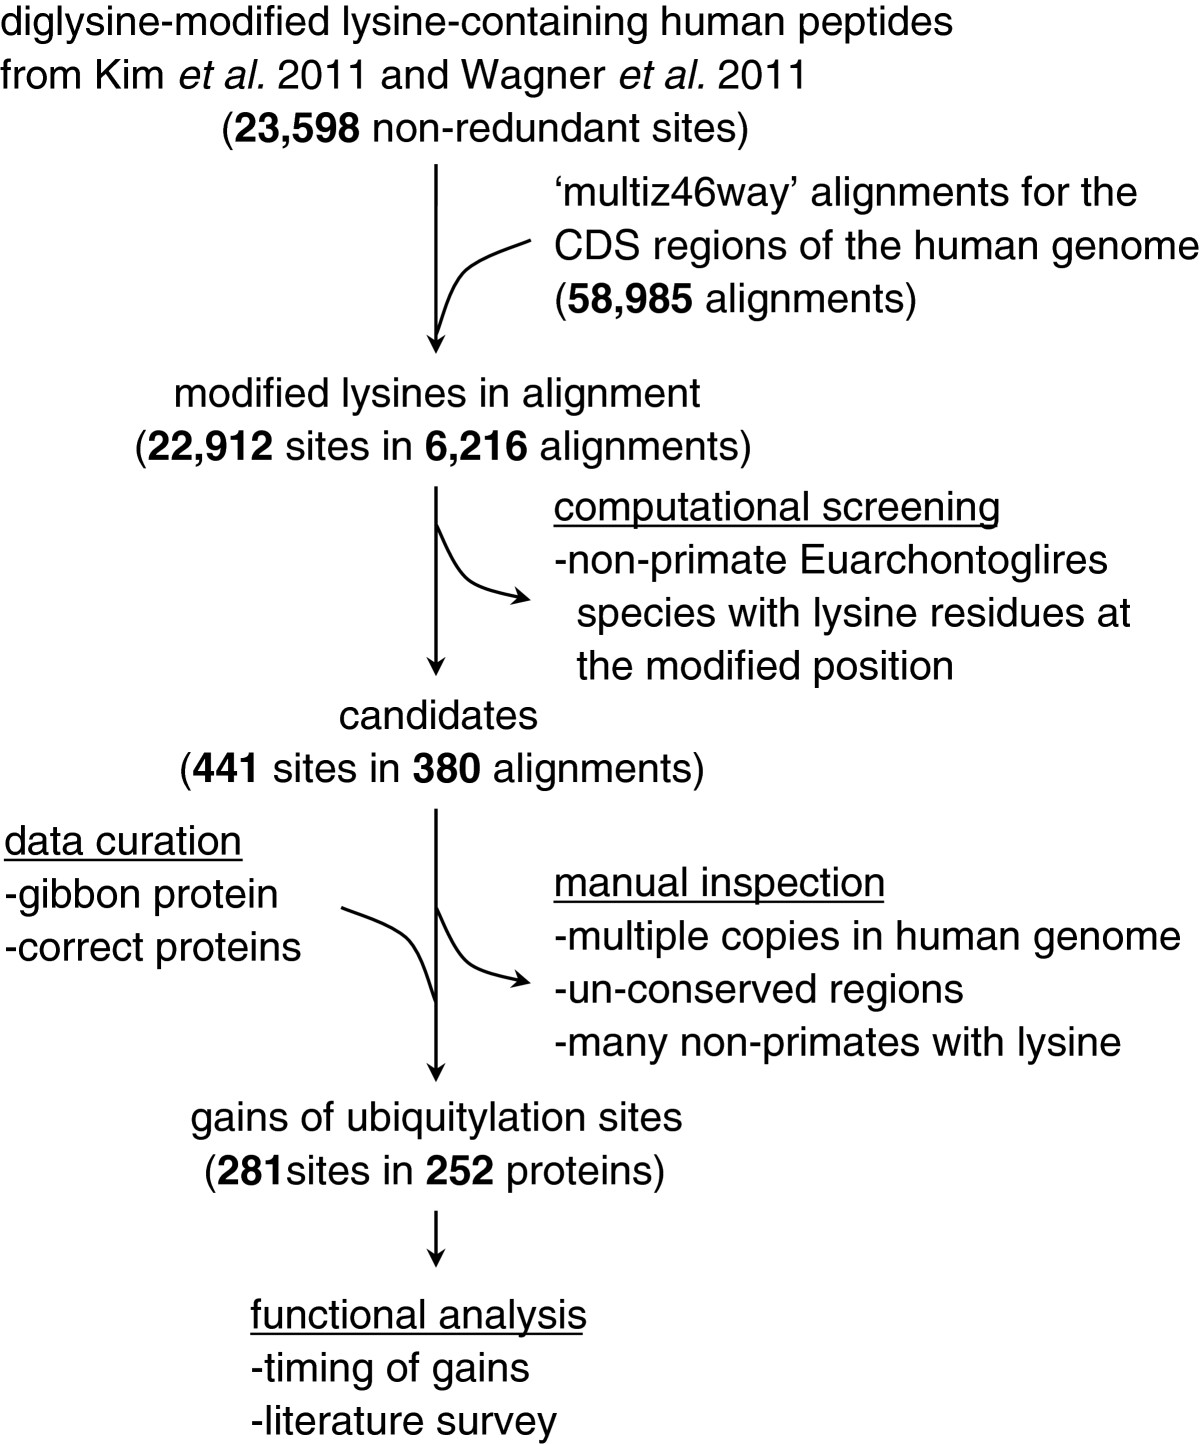 https://static-content.springer.com/image/art%3A10.1186%2F1471-2105-13-306/MediaObjects/12859_2012_Article_5633_Fig1_HTML.jpg